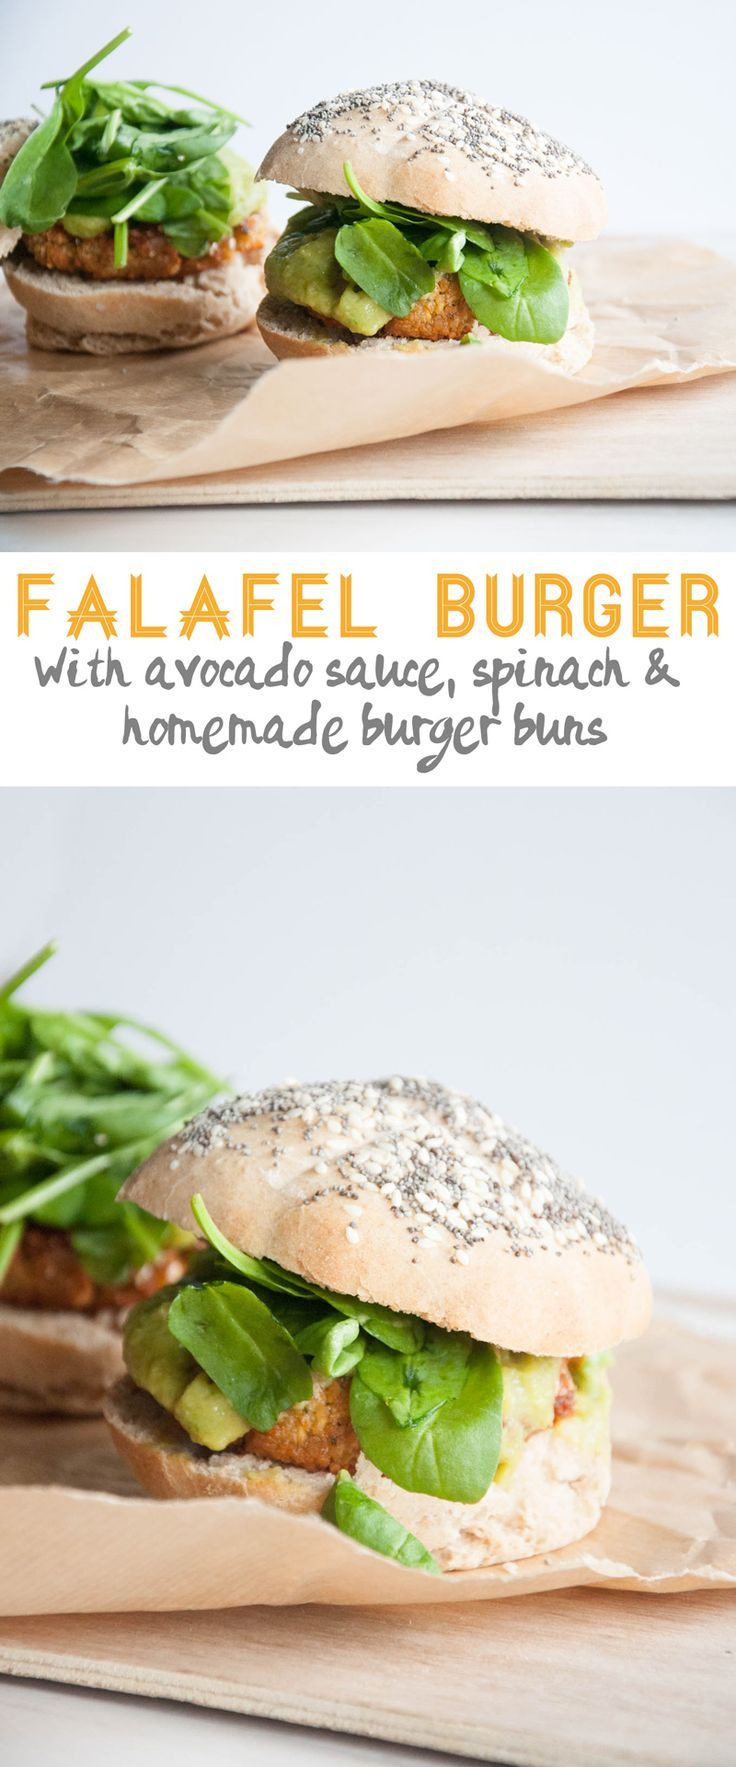 Vegan Falafel Burger with spinach & homemade burger buns | ElephantasticVegan.com